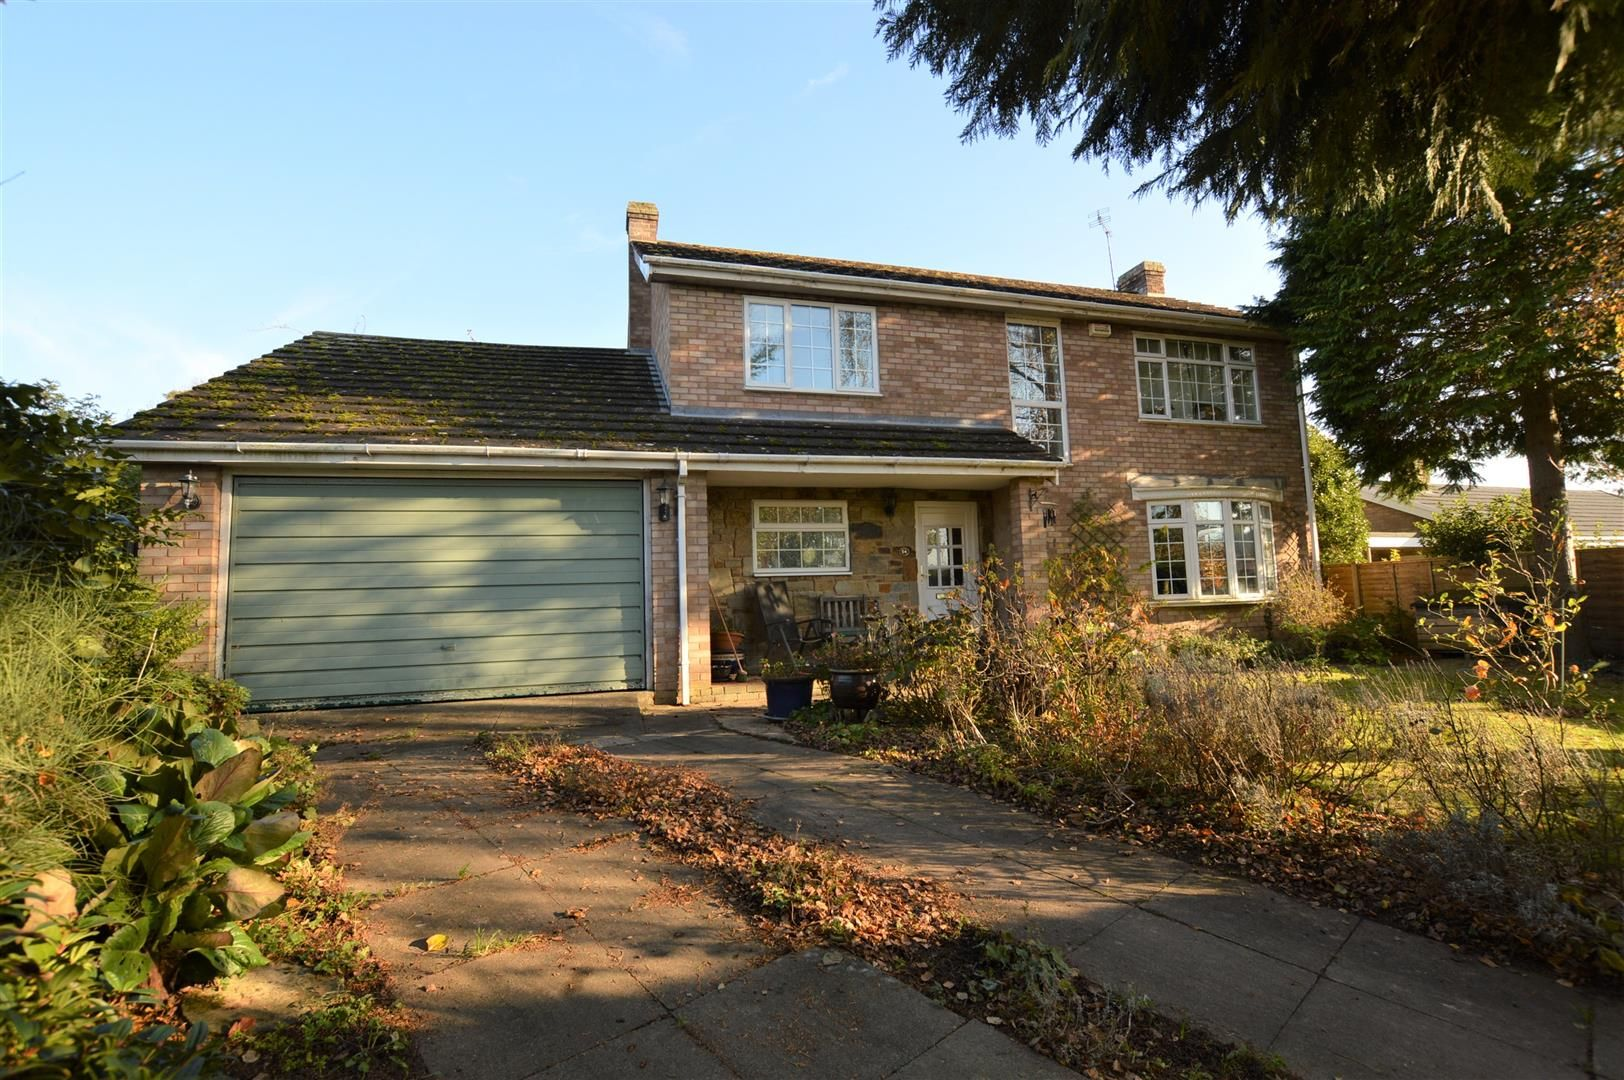 4 bed detached for sale in Luston, HR6